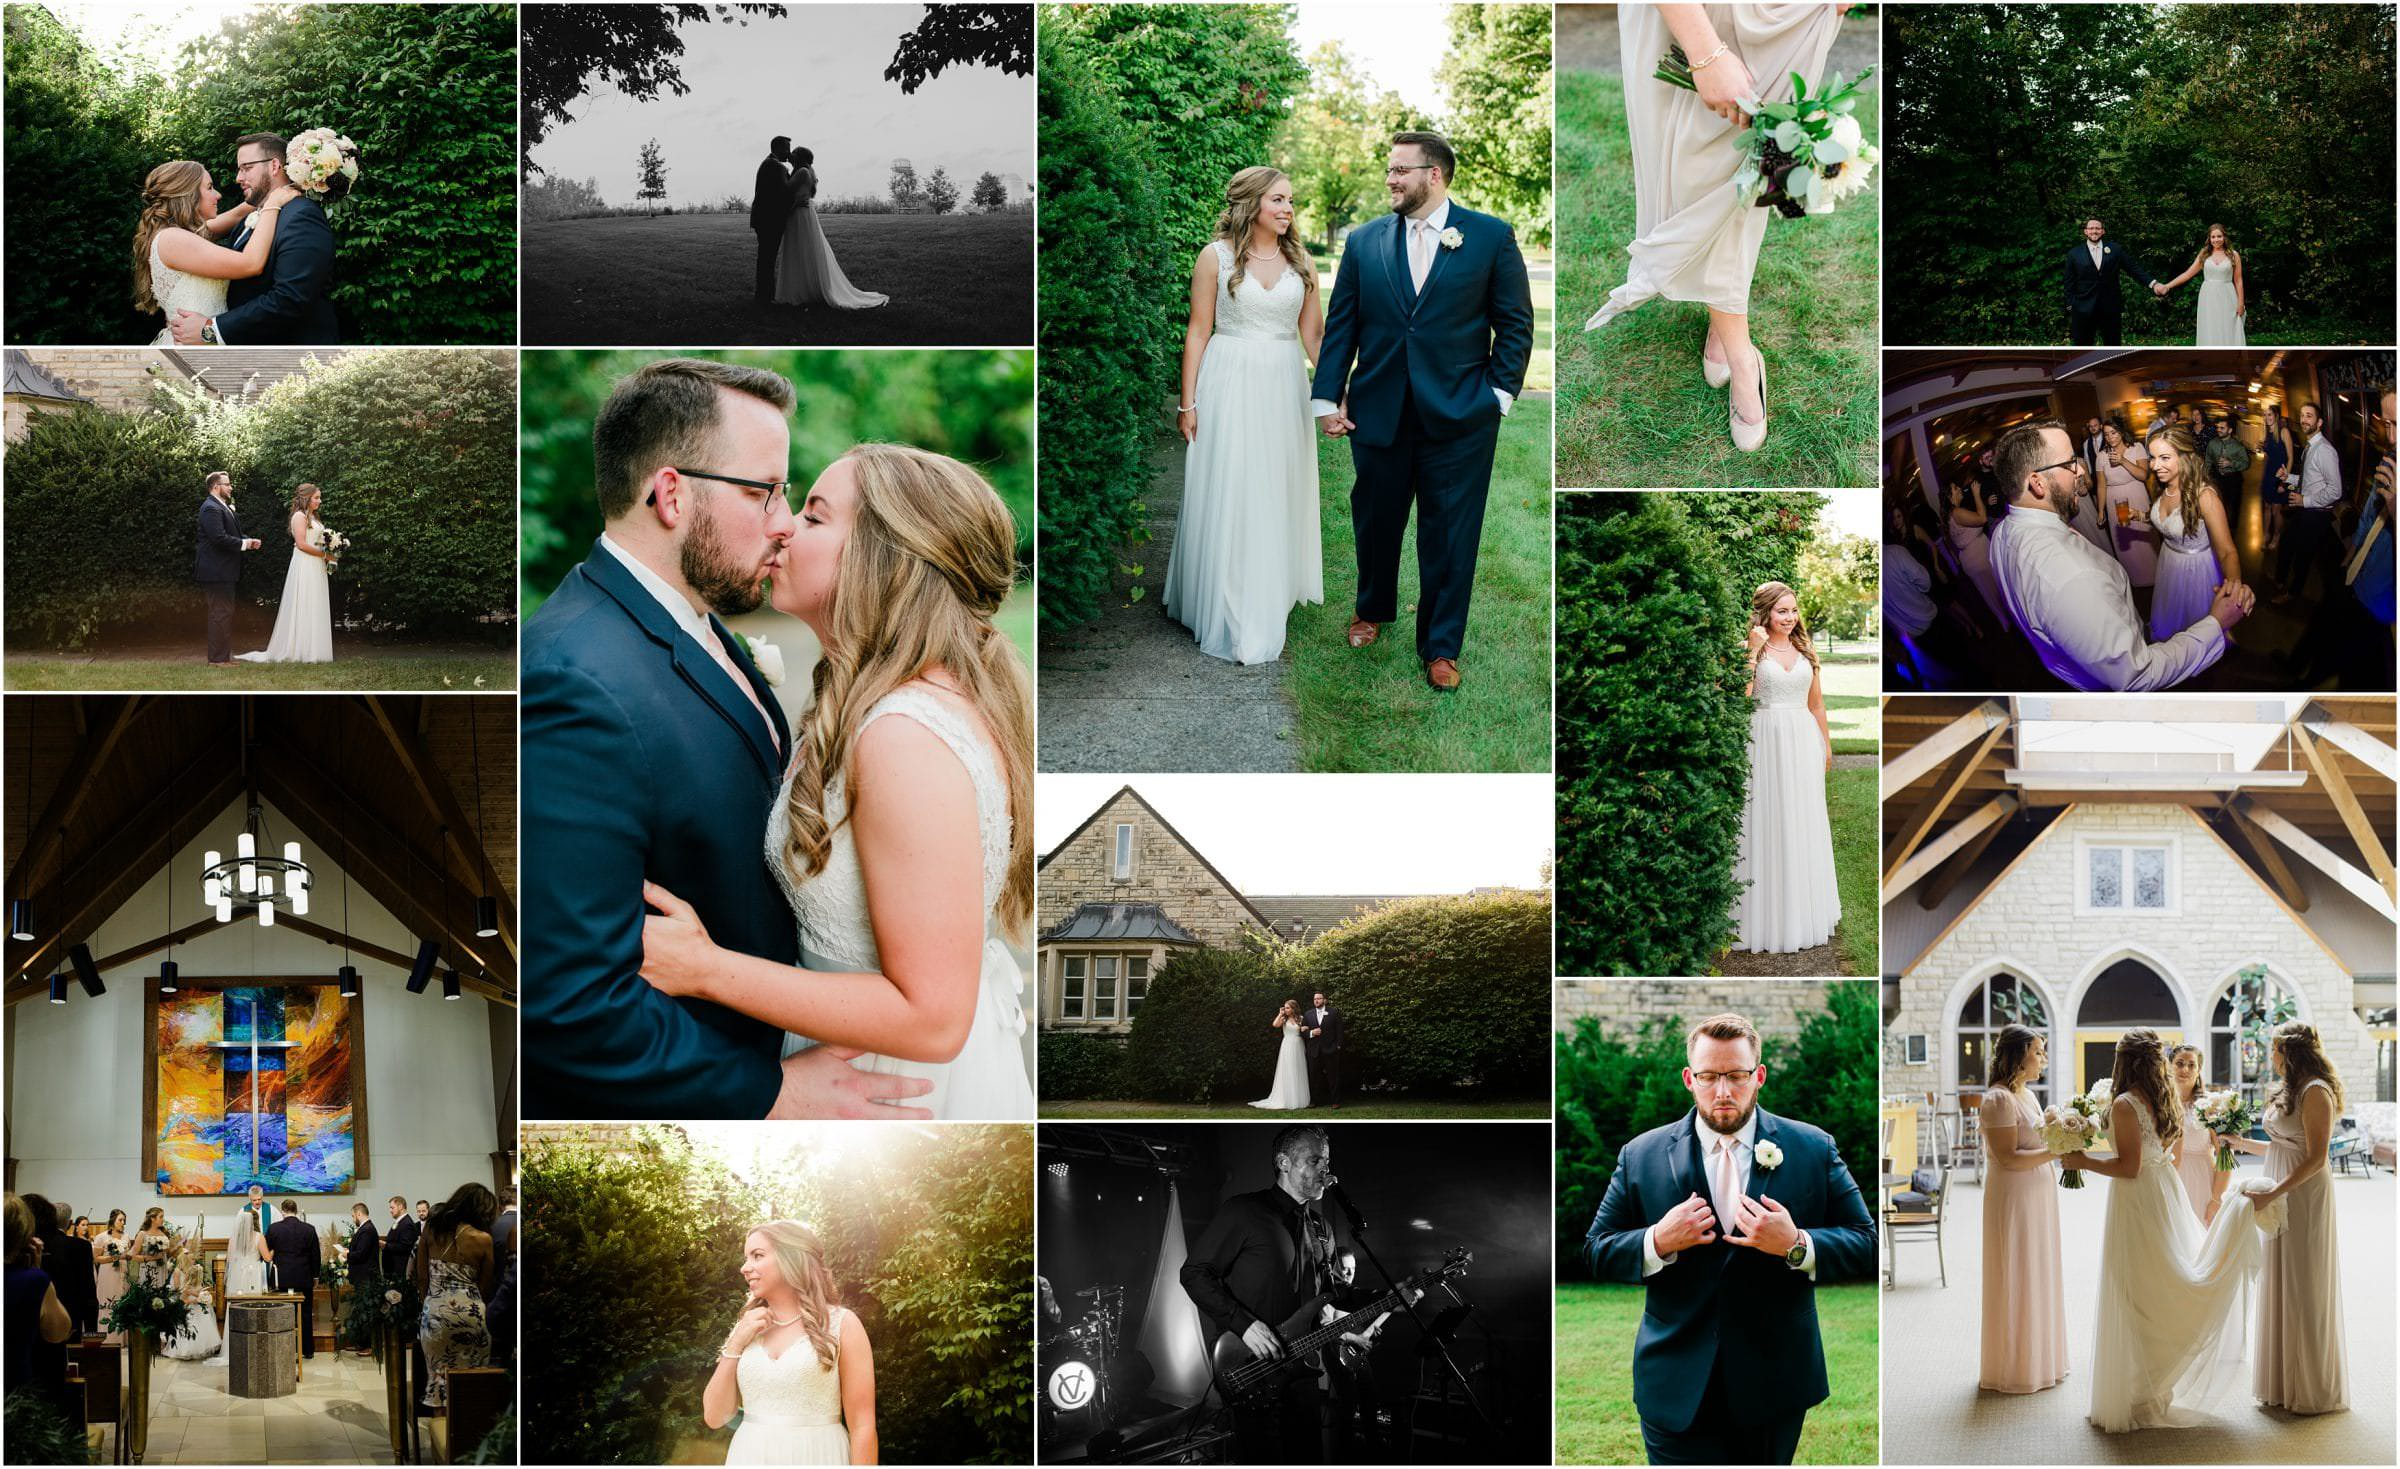 adam lowe photography, wedding photography, fine art wedding, photographer, style, love, fashion, editorial, commercial, audubon center